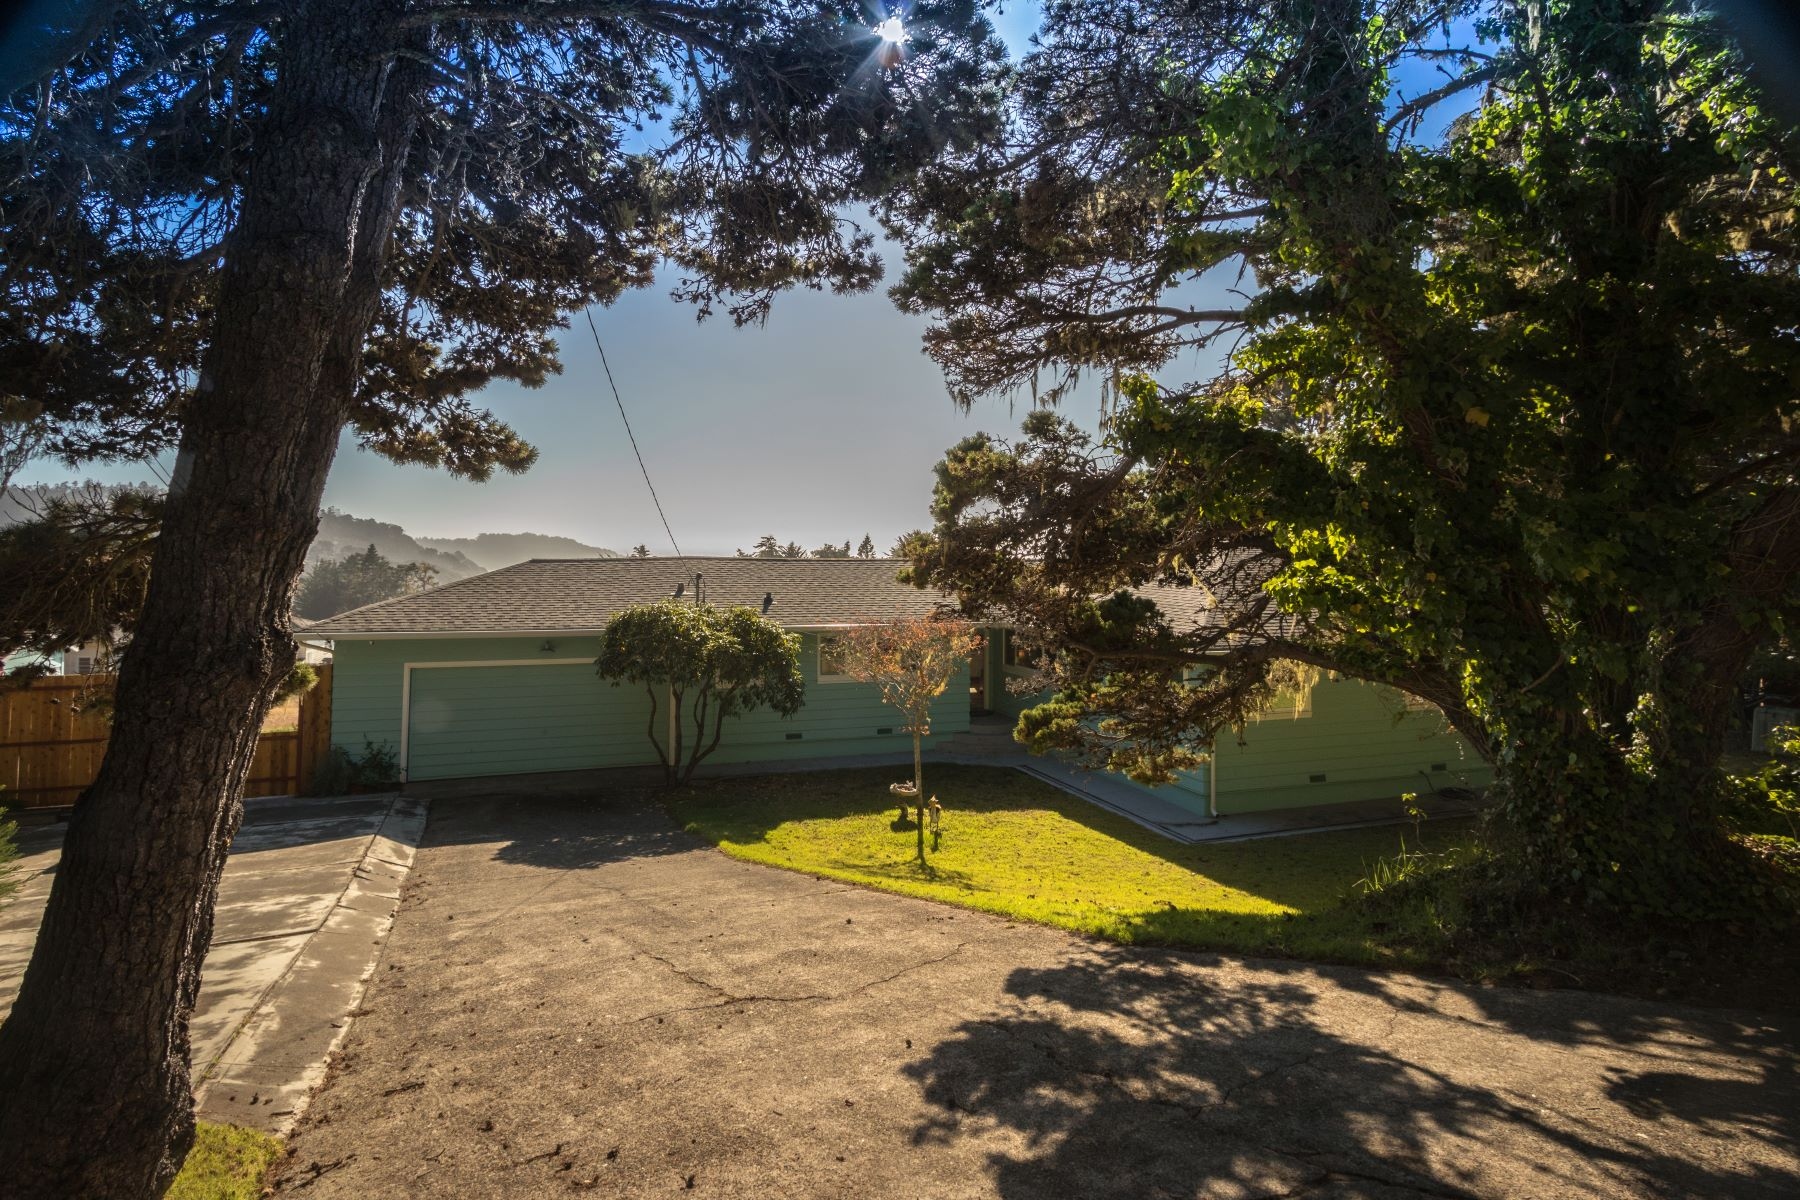 Single Family Home for Sale at Coastal Charm! 44711 Pine Street Mendocino, California 95460 United States